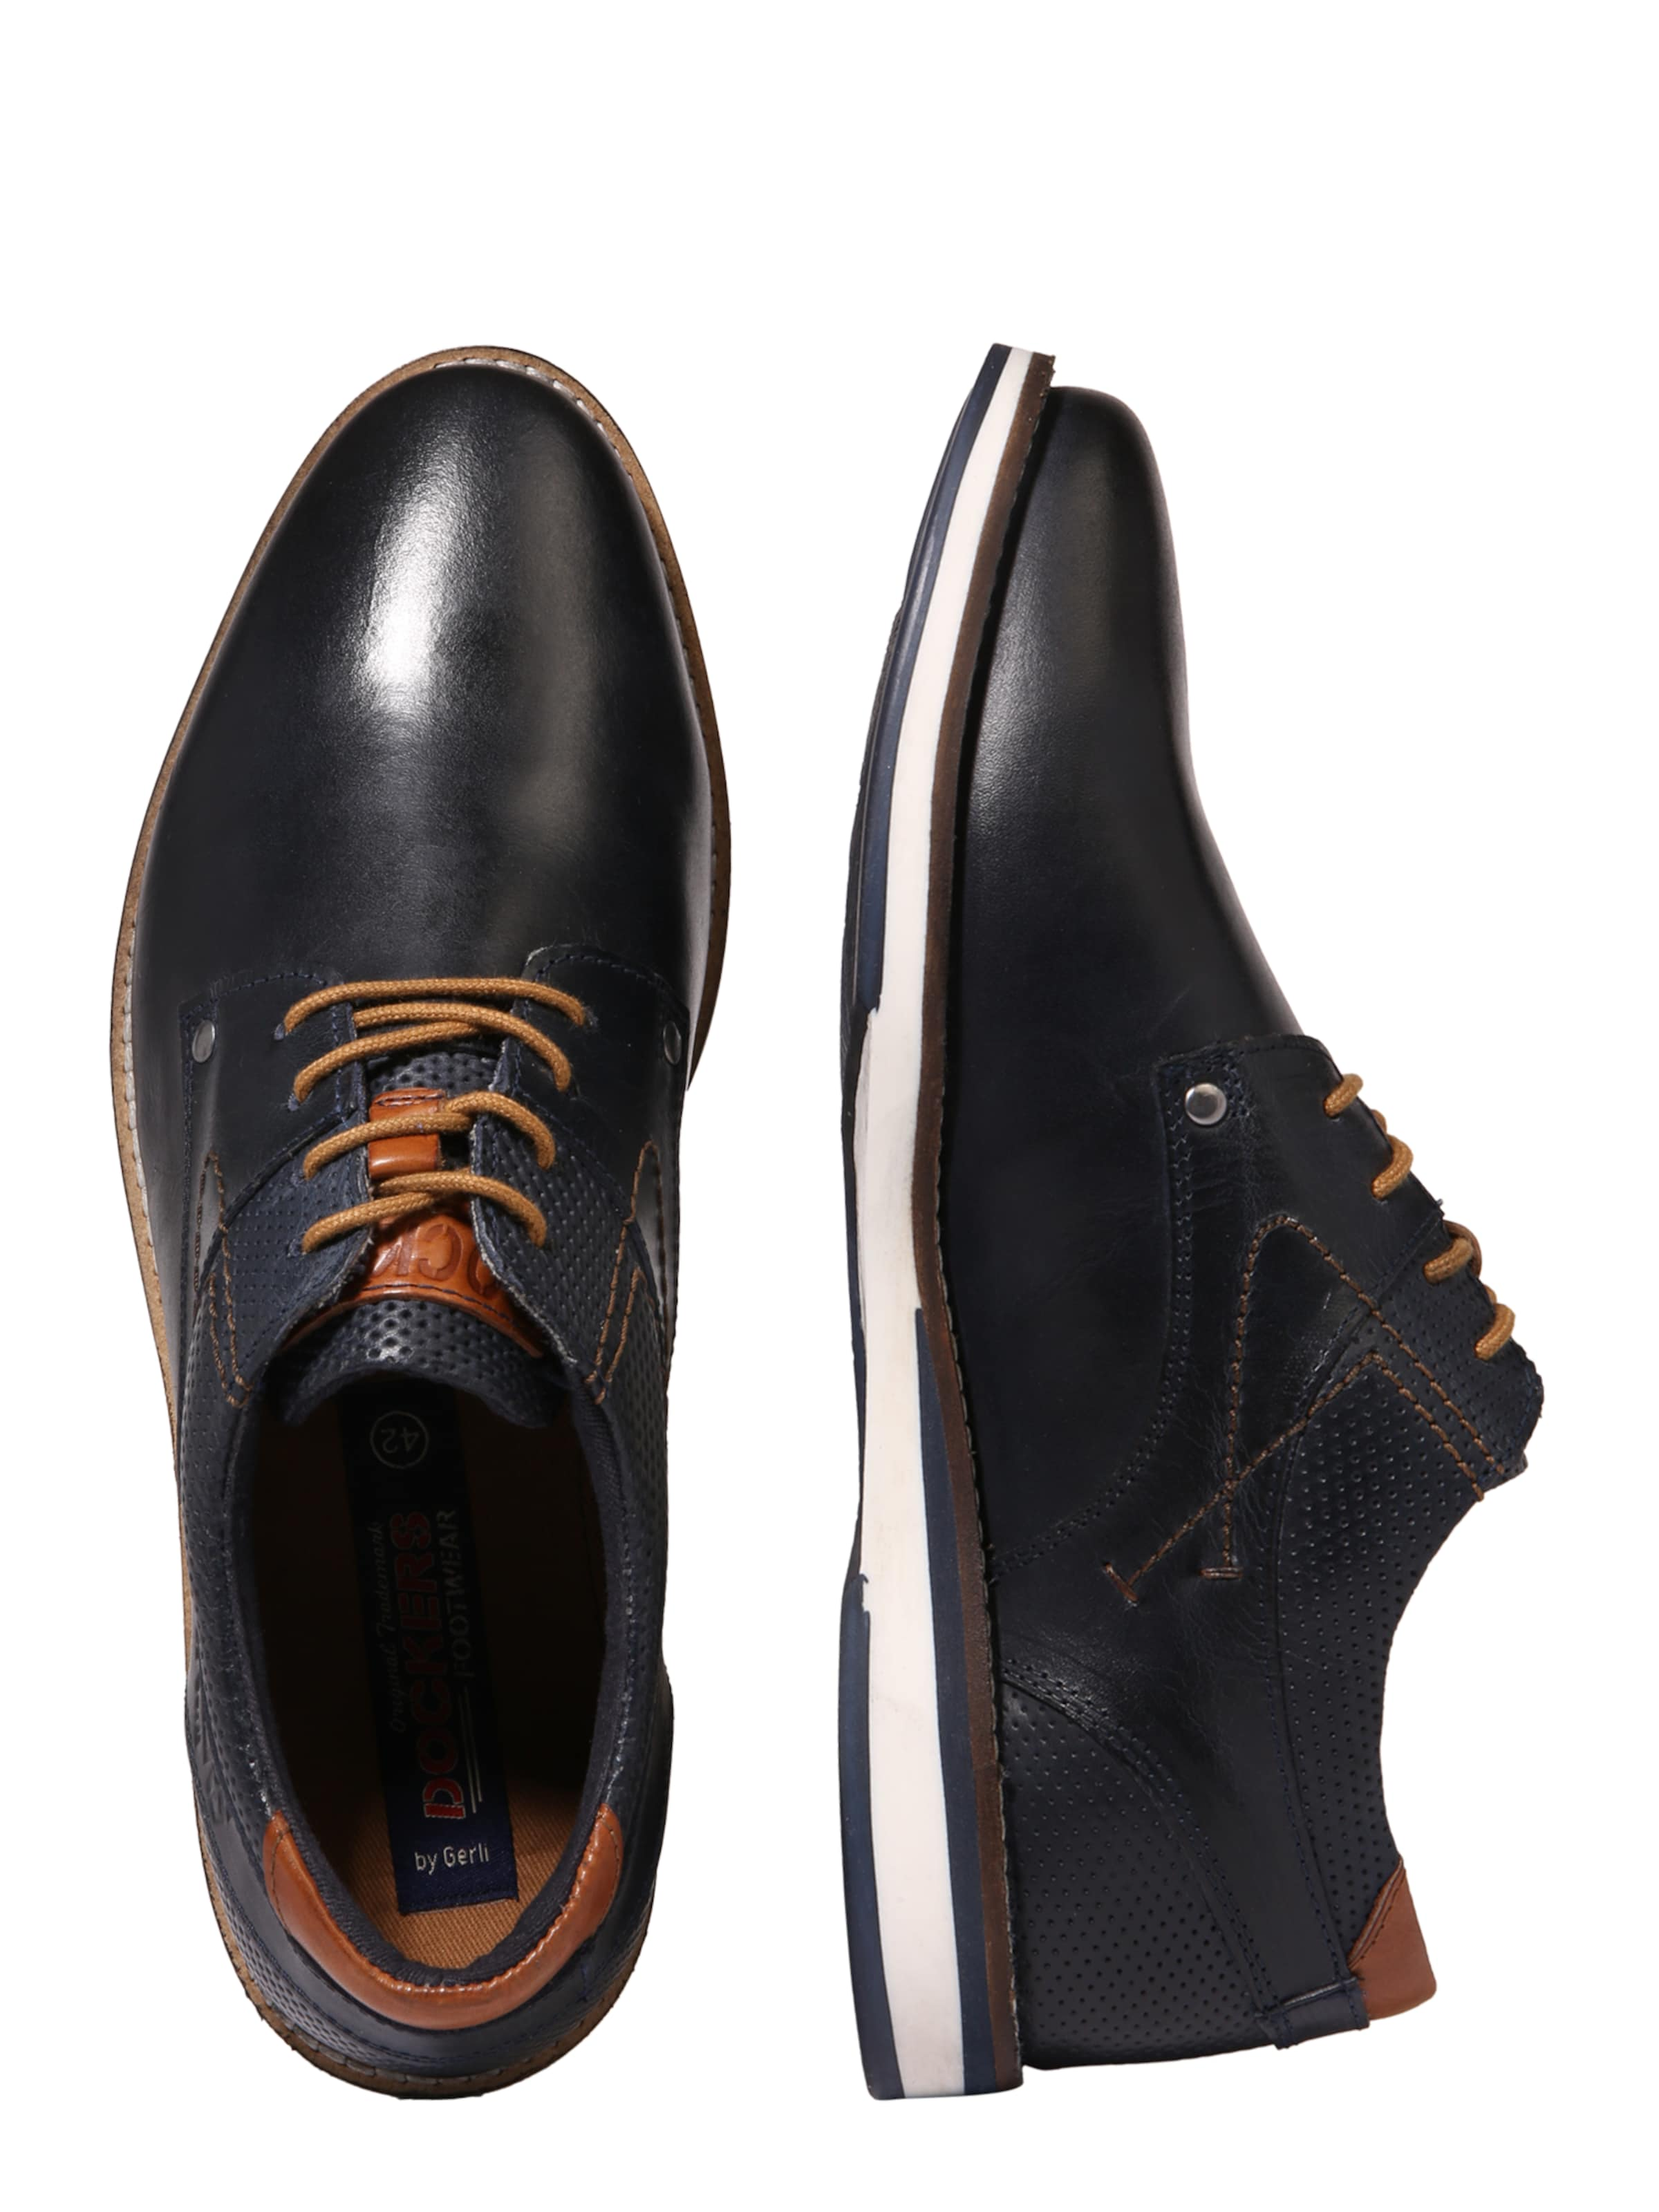 NavyCognac By In Dockers Gerli Halbschuhe Lq4S5Rjc3A